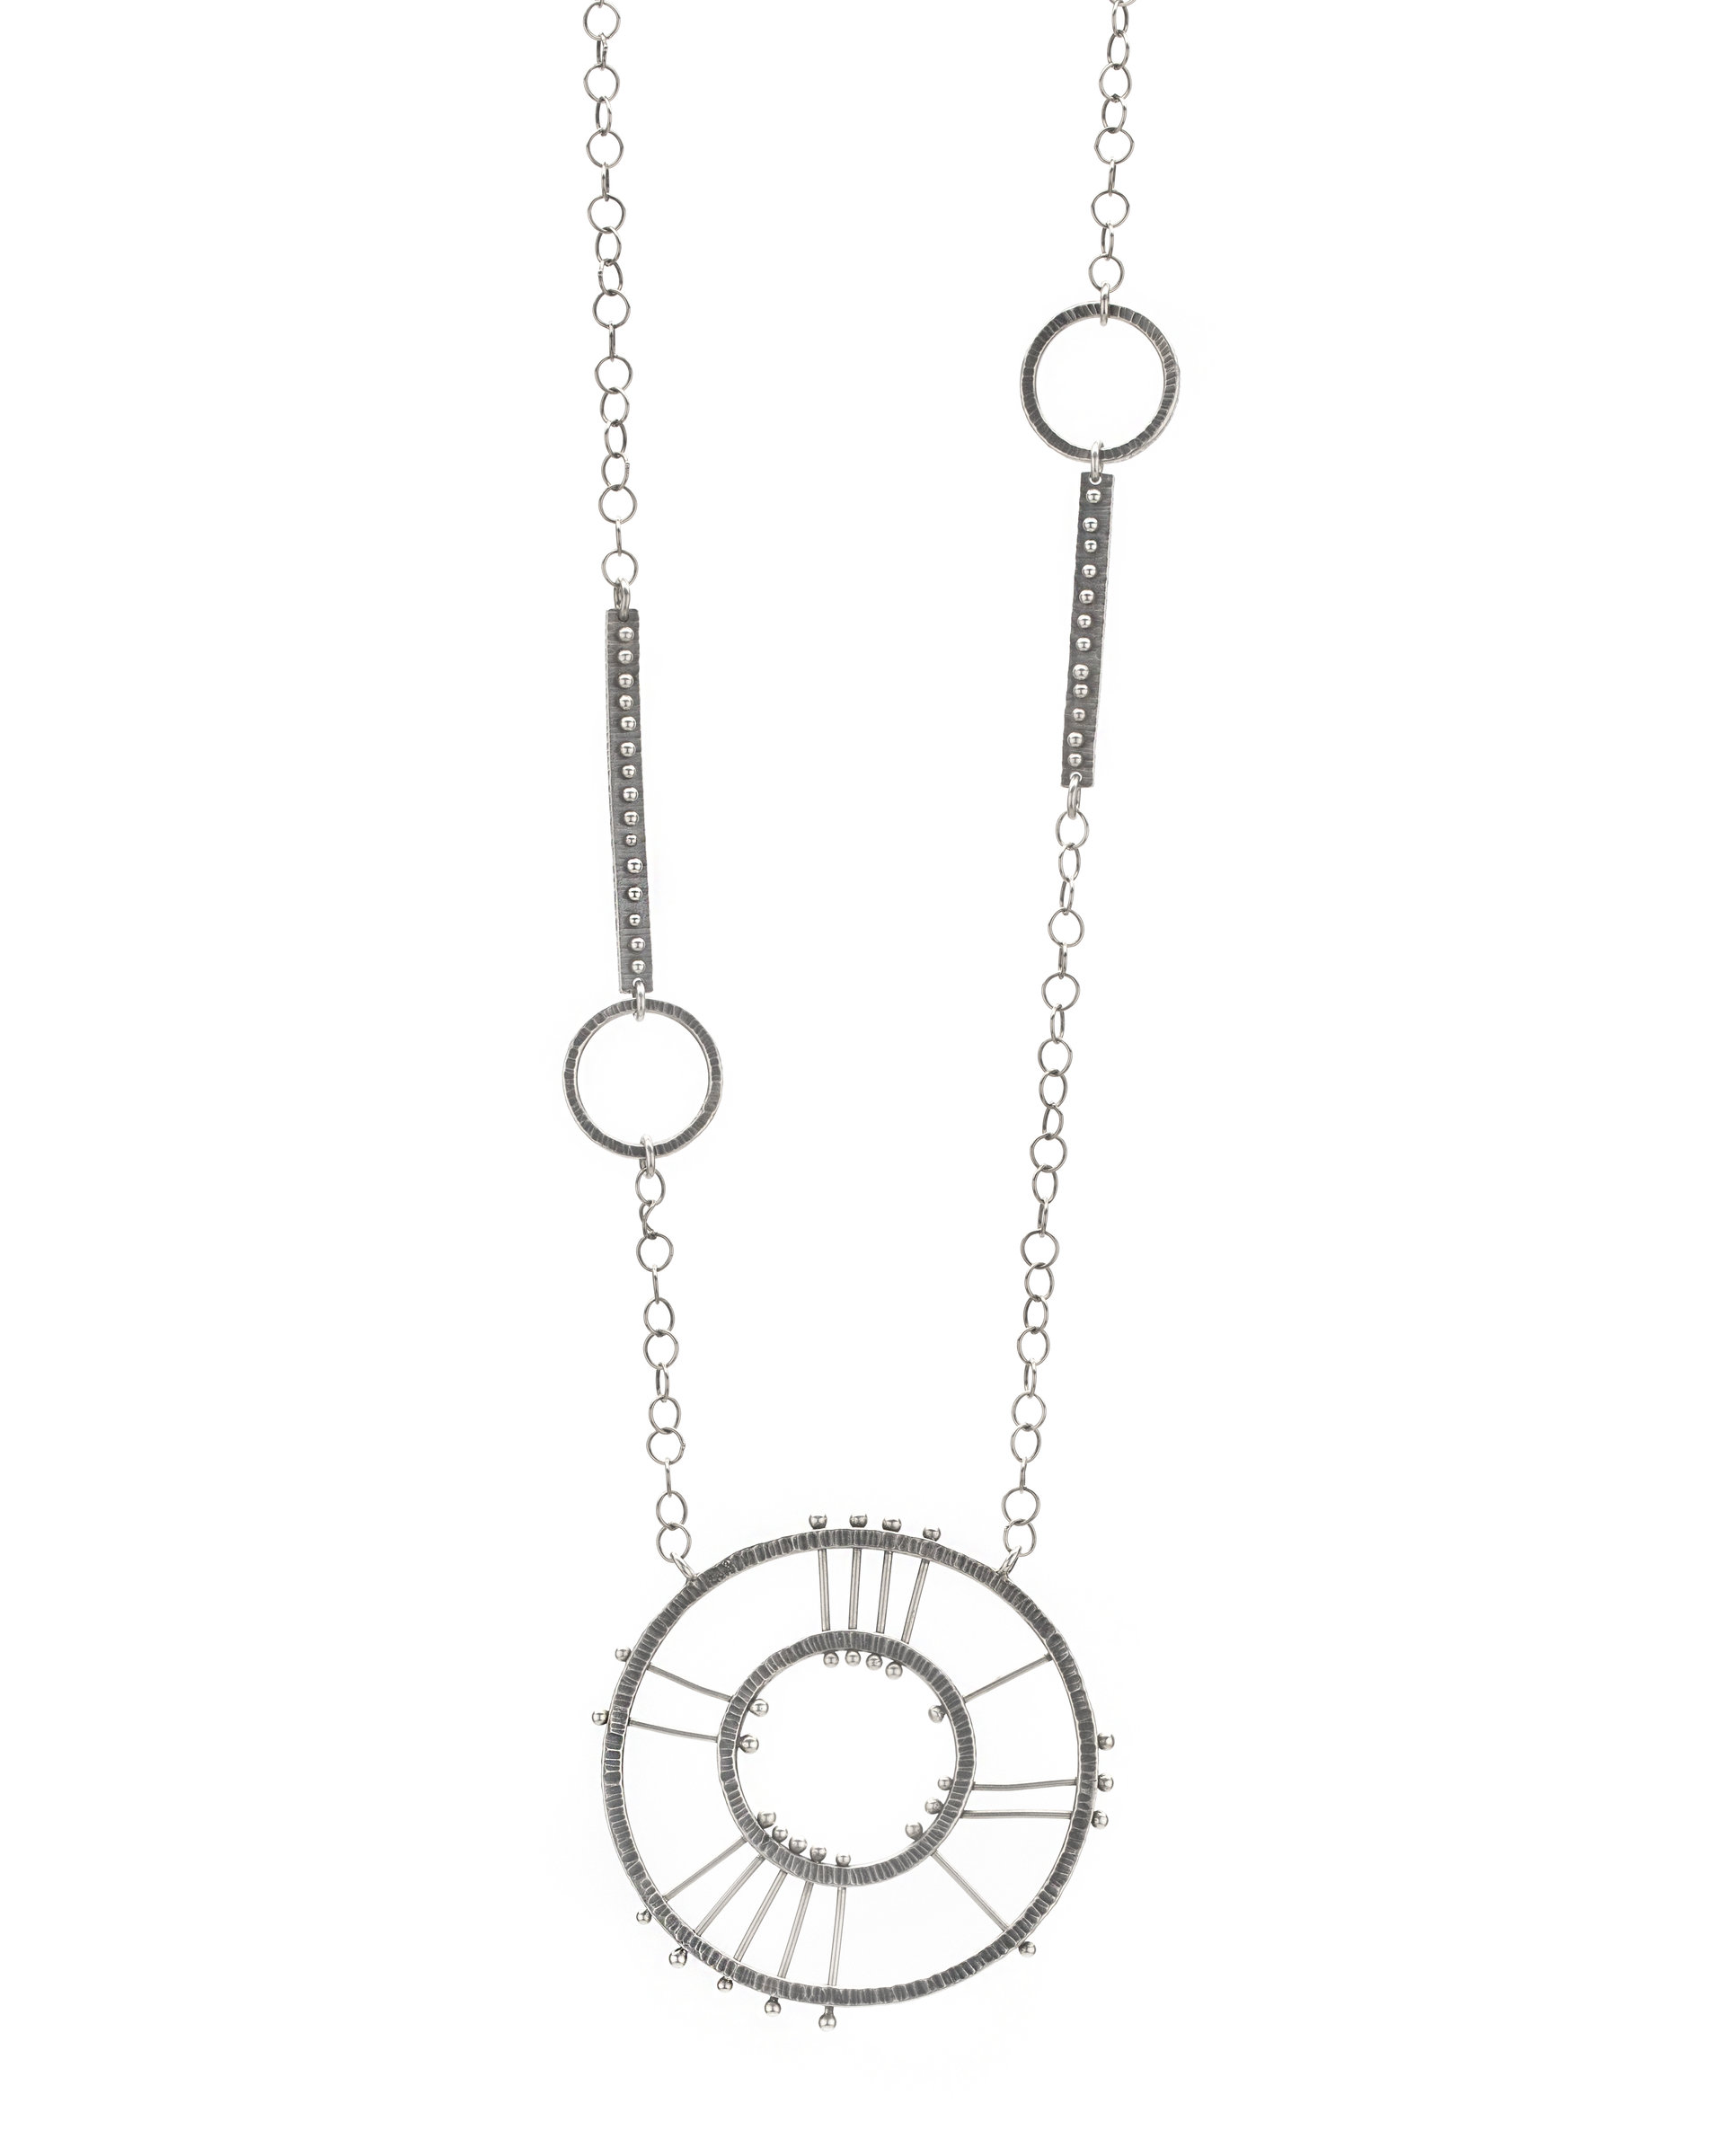 Double Circle Radial Necklace by Nikki Nation (Silver